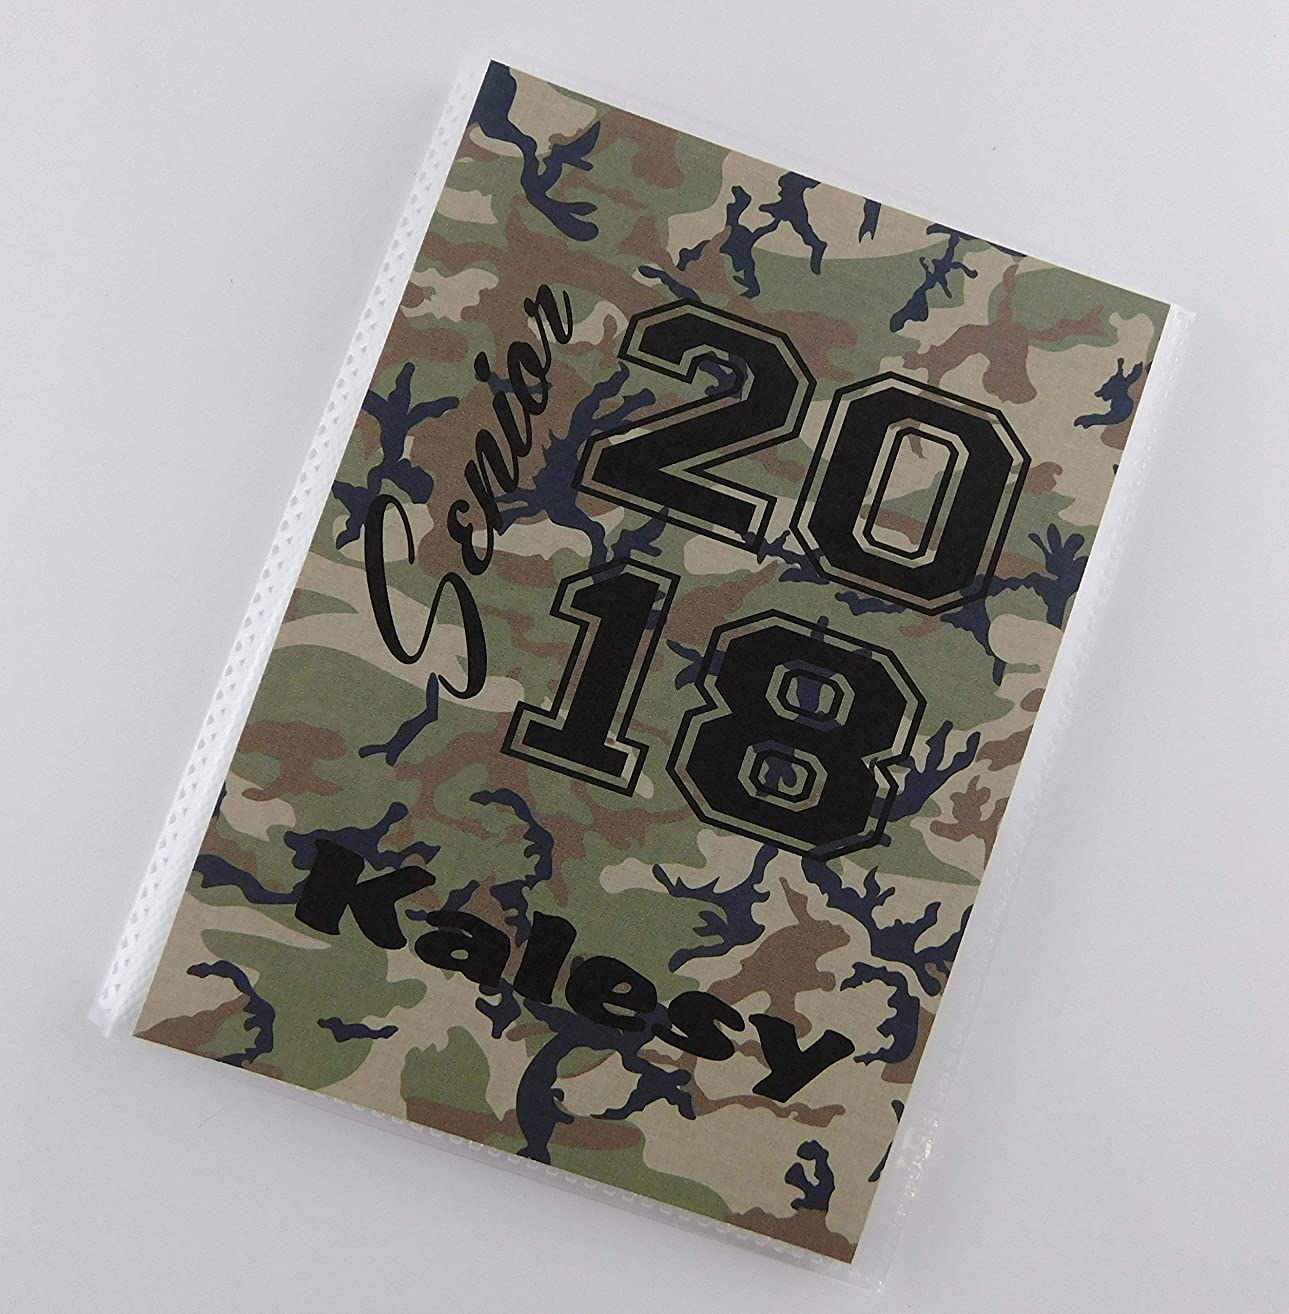 Class of 2018 2019 Senior Pictures IA#874 Graduation Gift For Senior 5x7 or 4x6 Pictures High School Highschool Boot Camp Camo Camouflage Army Military Khaki